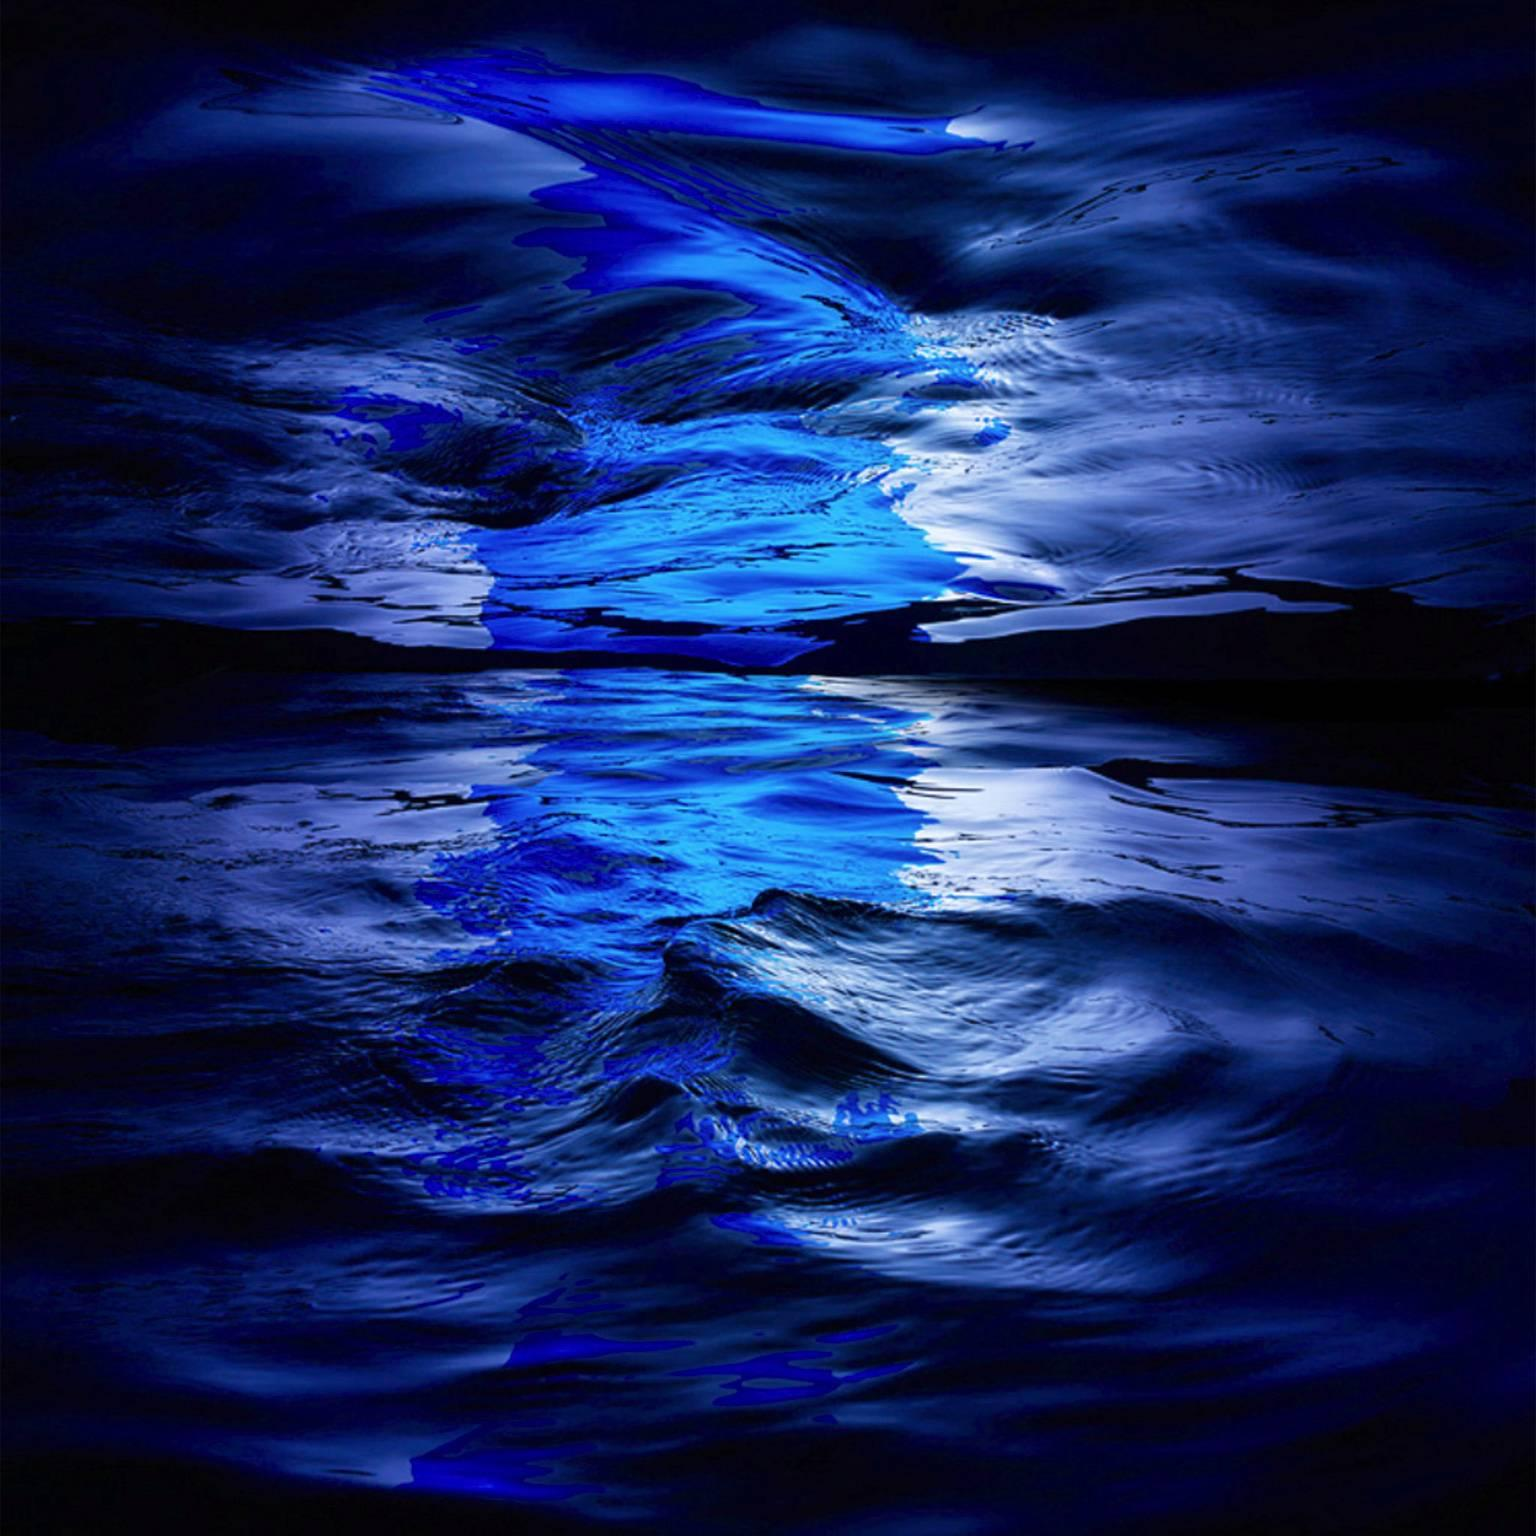 Wave I - large format abstract liquidscape in azur and lapis blue color palette